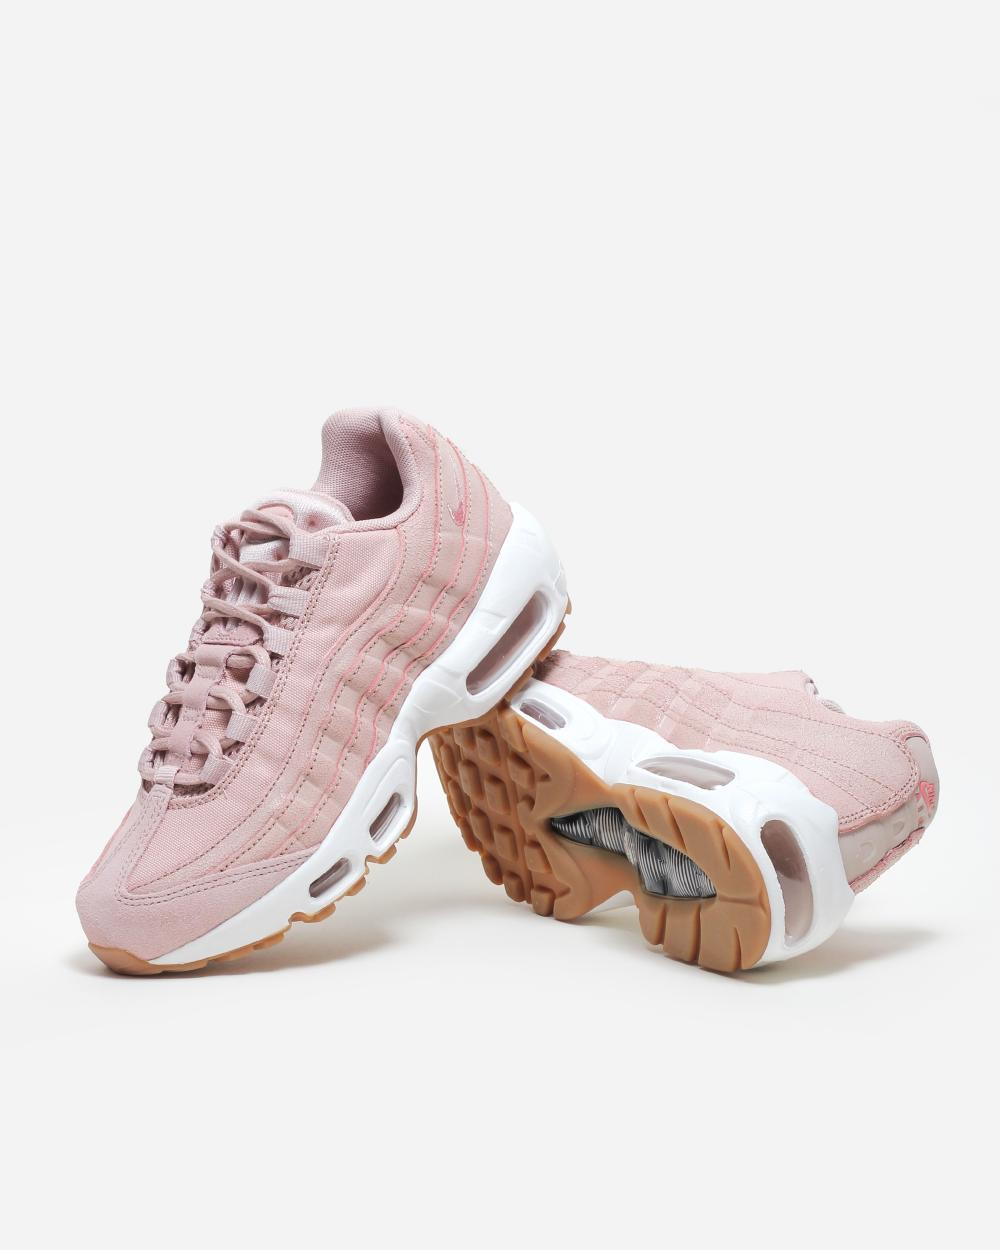 save off 08cdc de968 These Premium Air Max 95s Are Cotton Candy Sweet